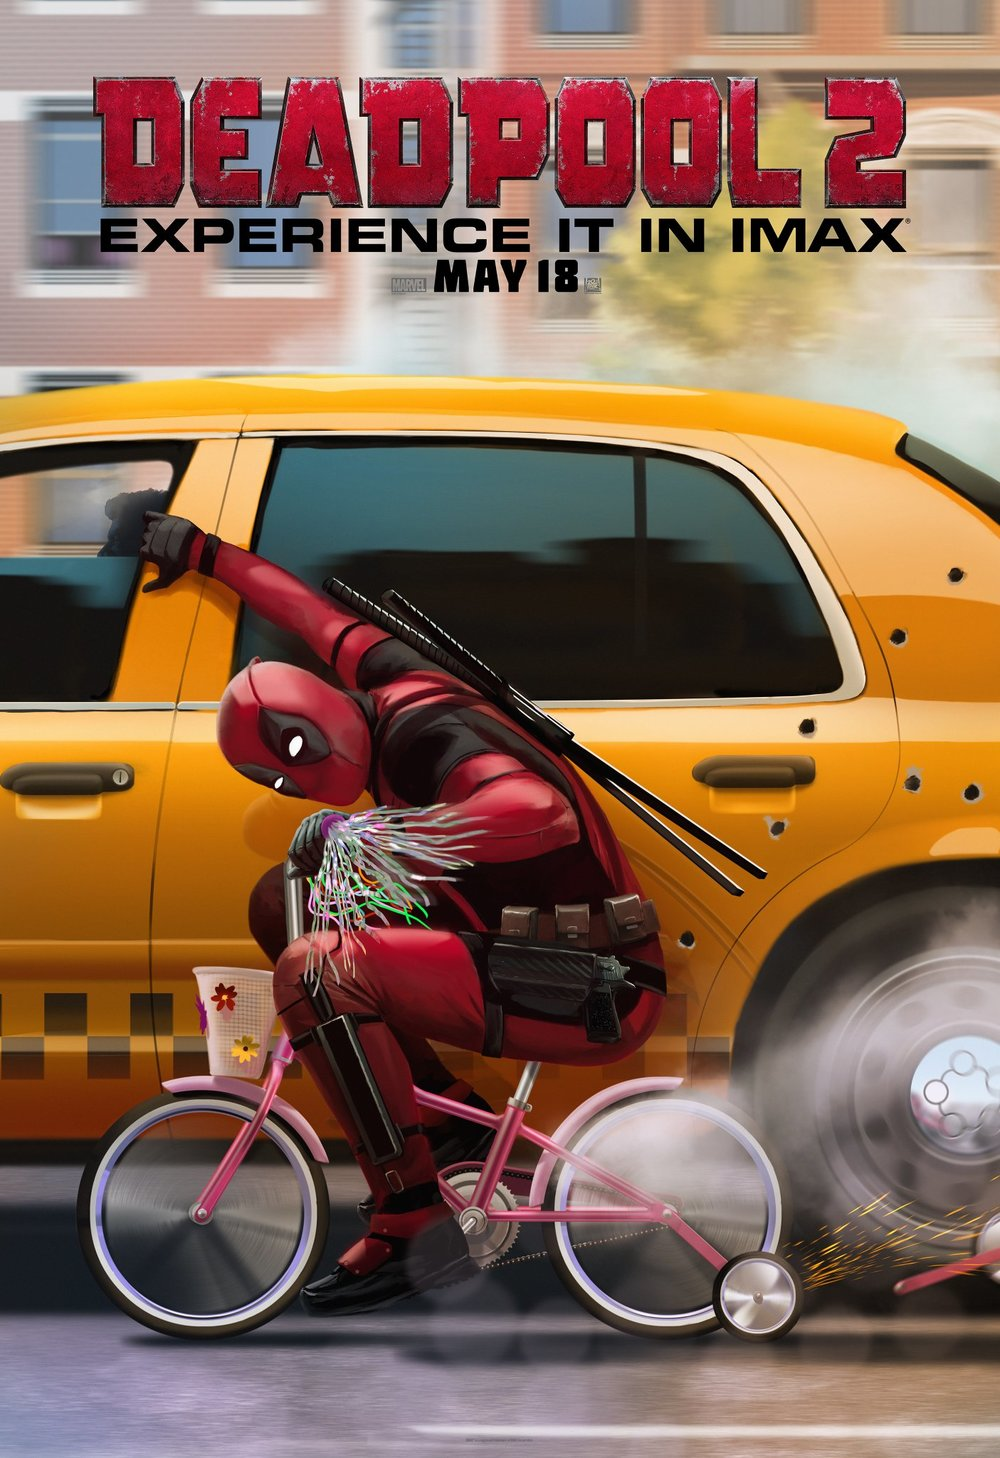 DcKf8G5V4AEsDhm.jpgfive-new-imax-posters-released-for-deadpool-2-come-from-a-deviantart-challenge-social